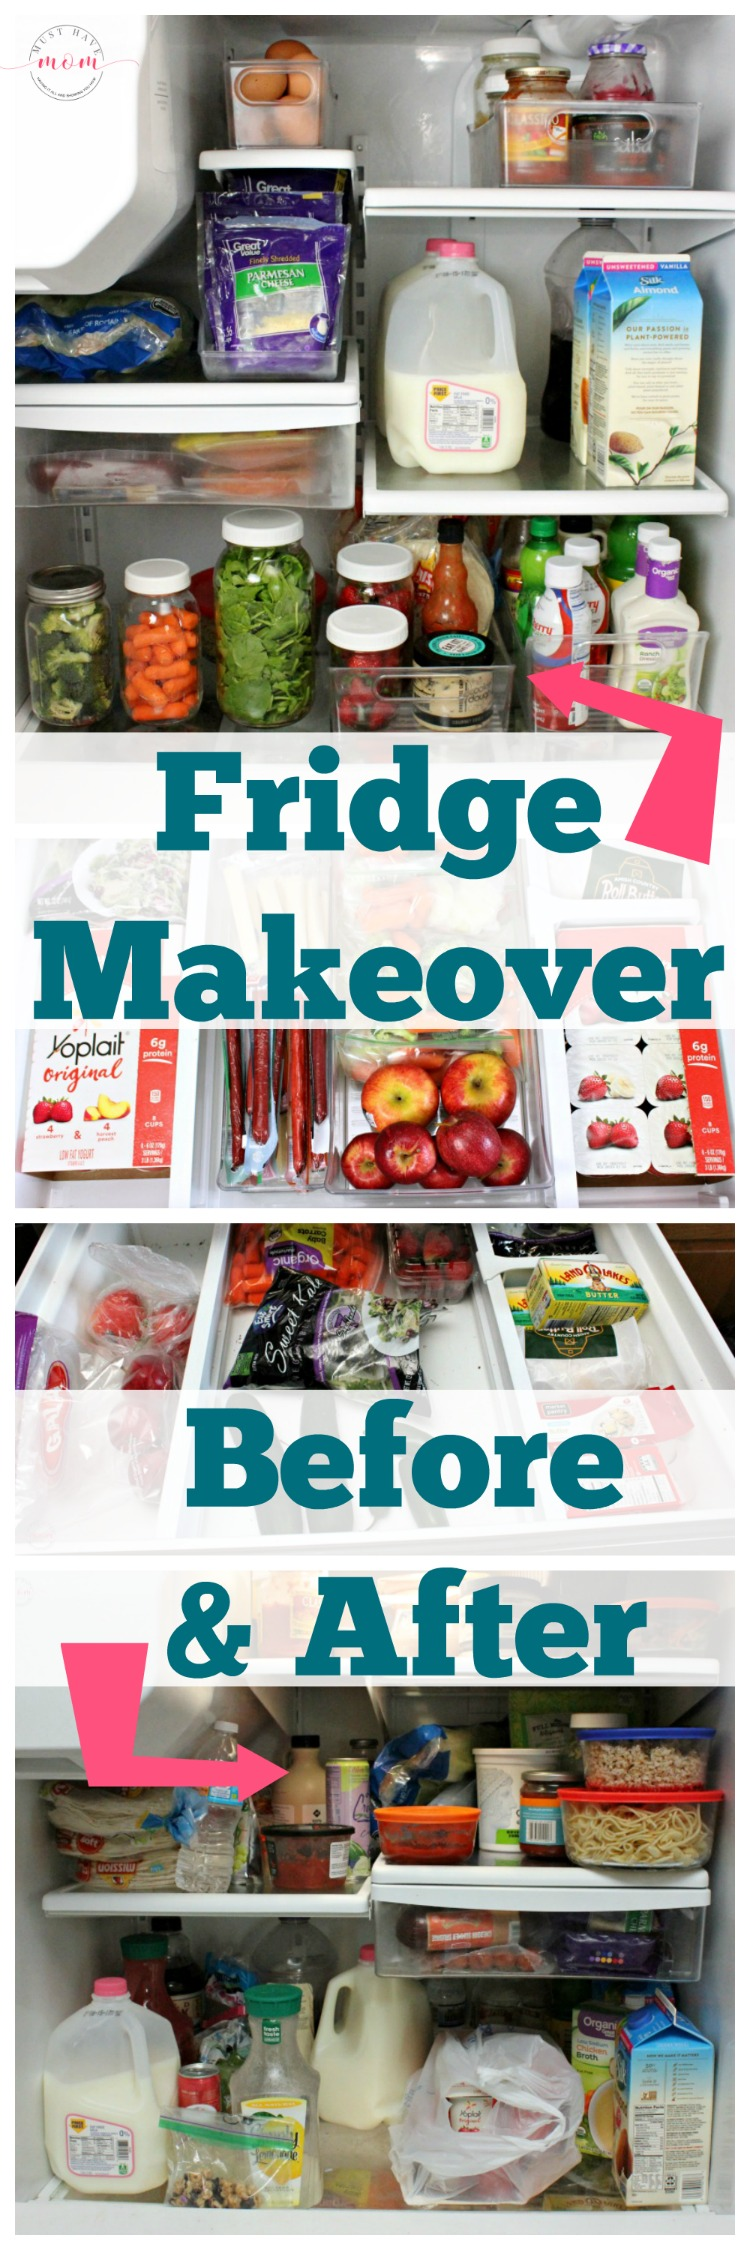 Fridge Makeover Before And After Organizing Must Have Mom